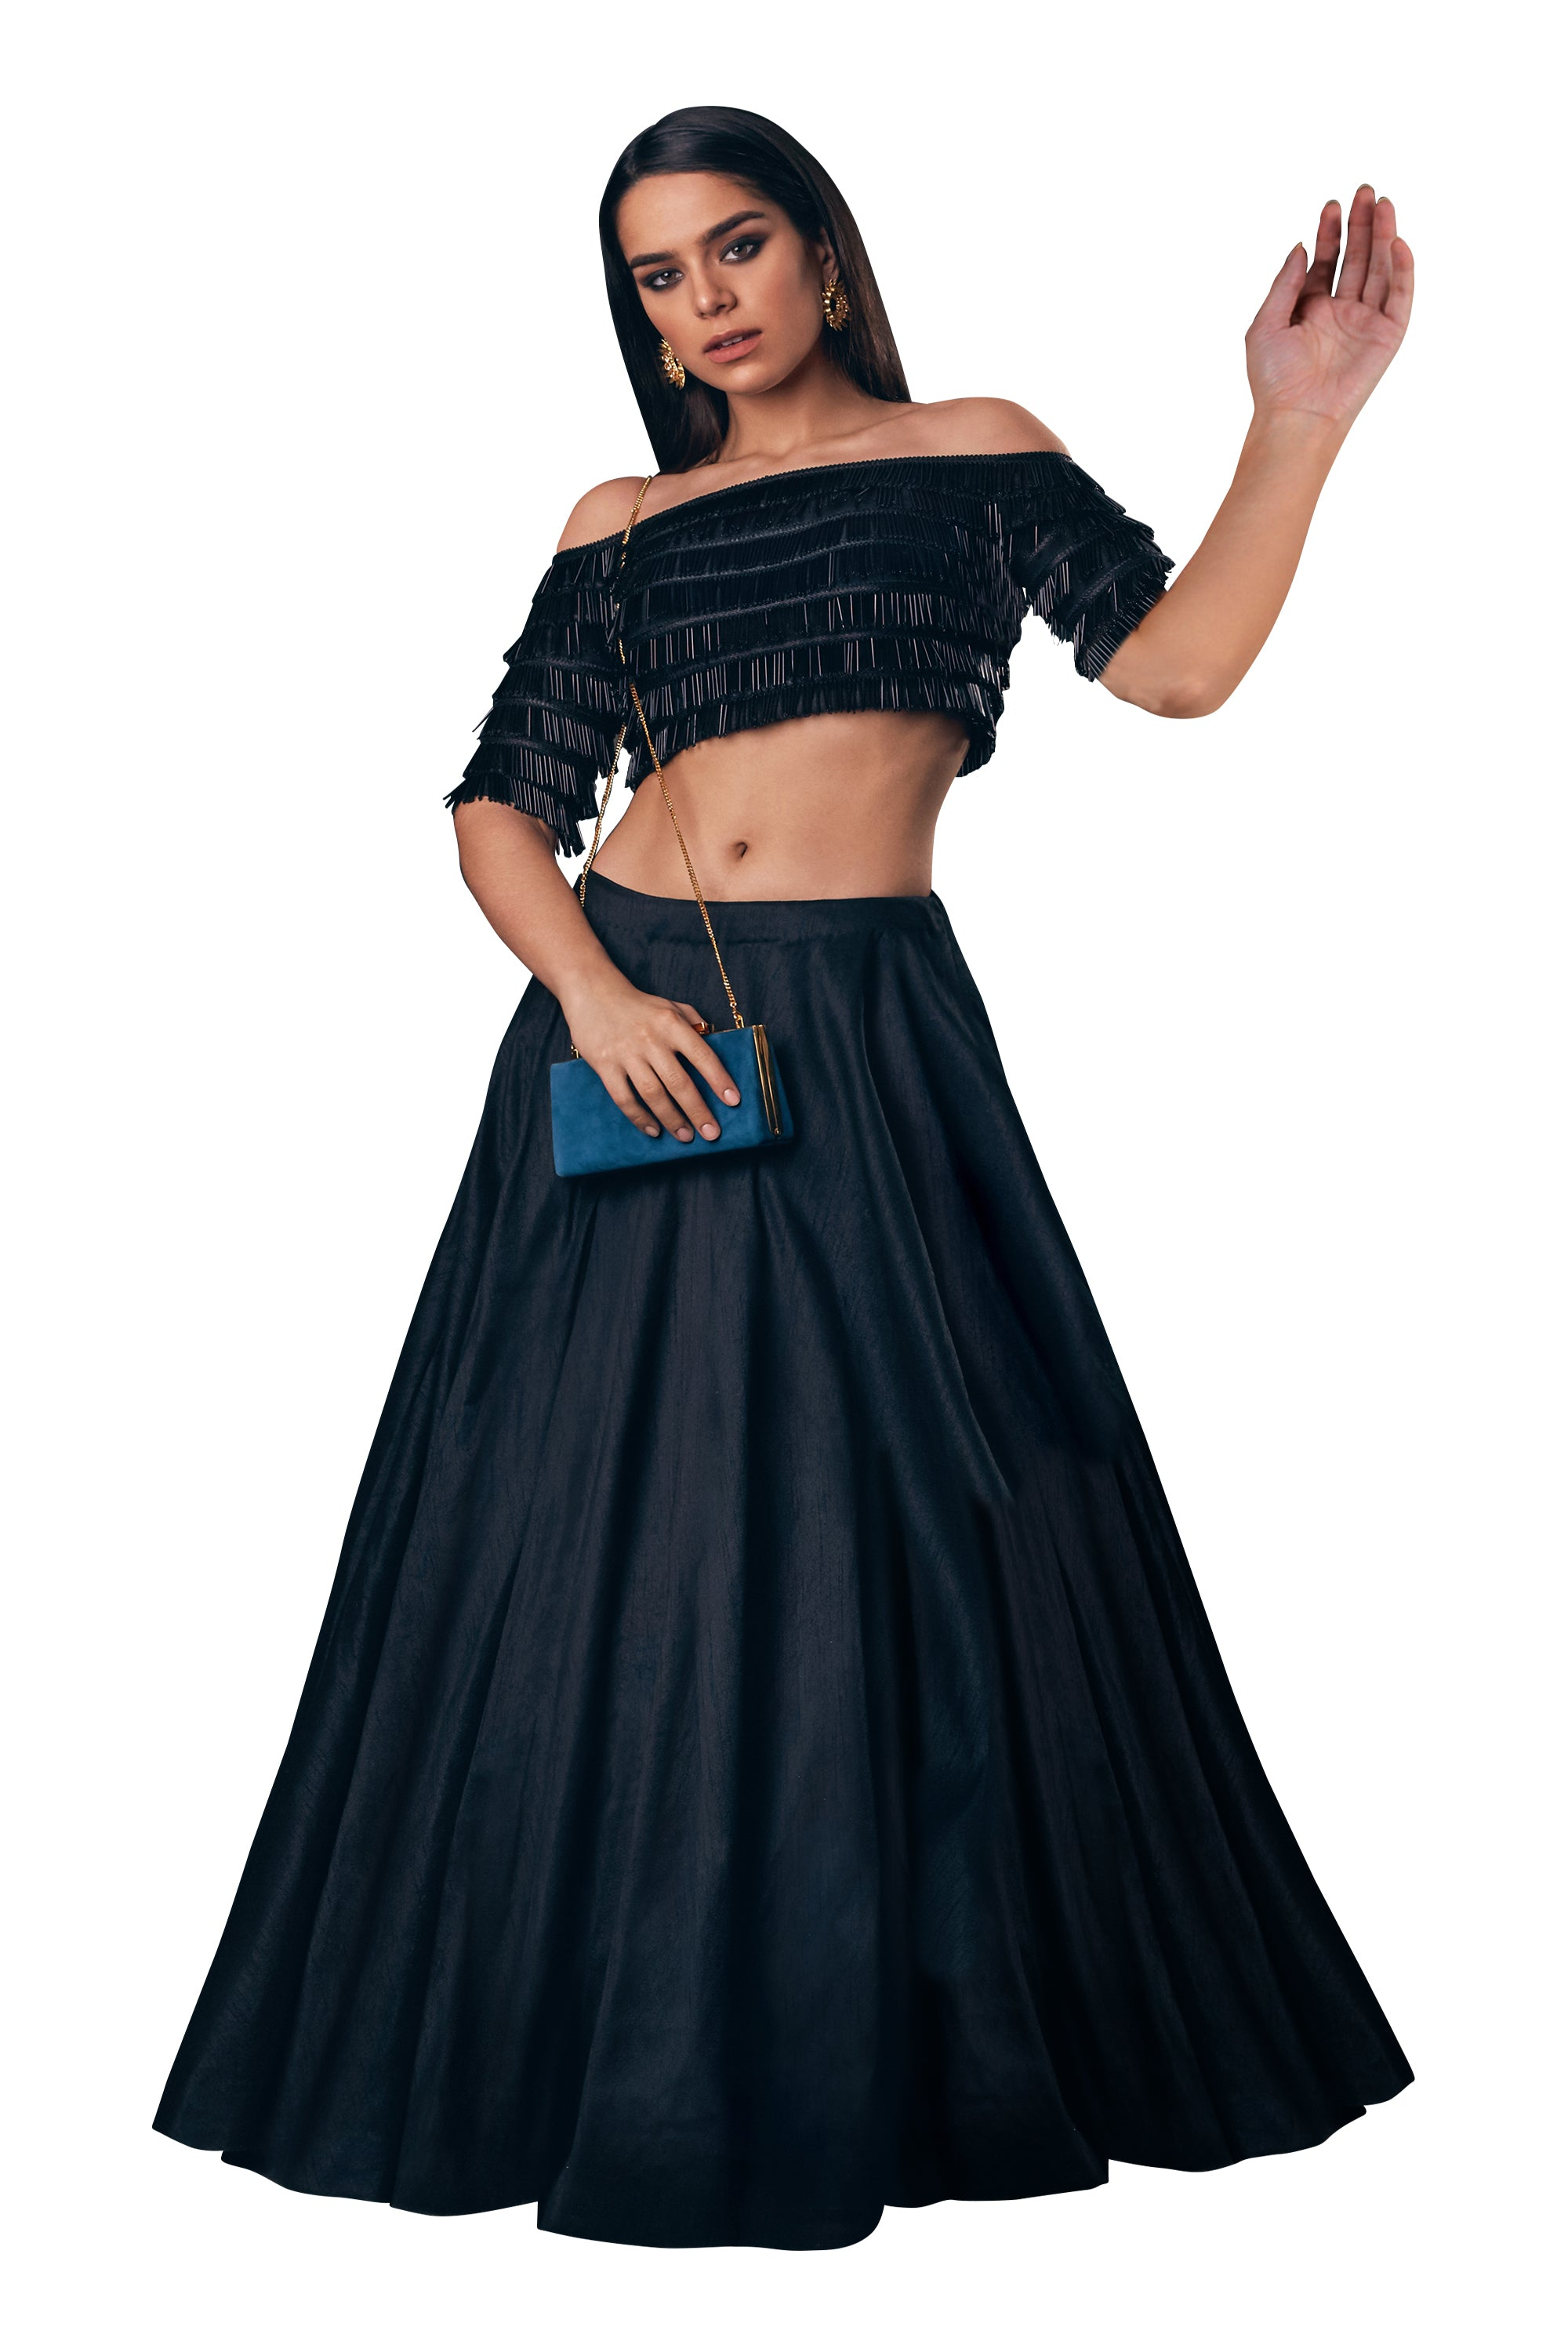 Off Shoulder Black Tassel Blouse With Black Round Flare Skirt Party Lehenga Set FRONT